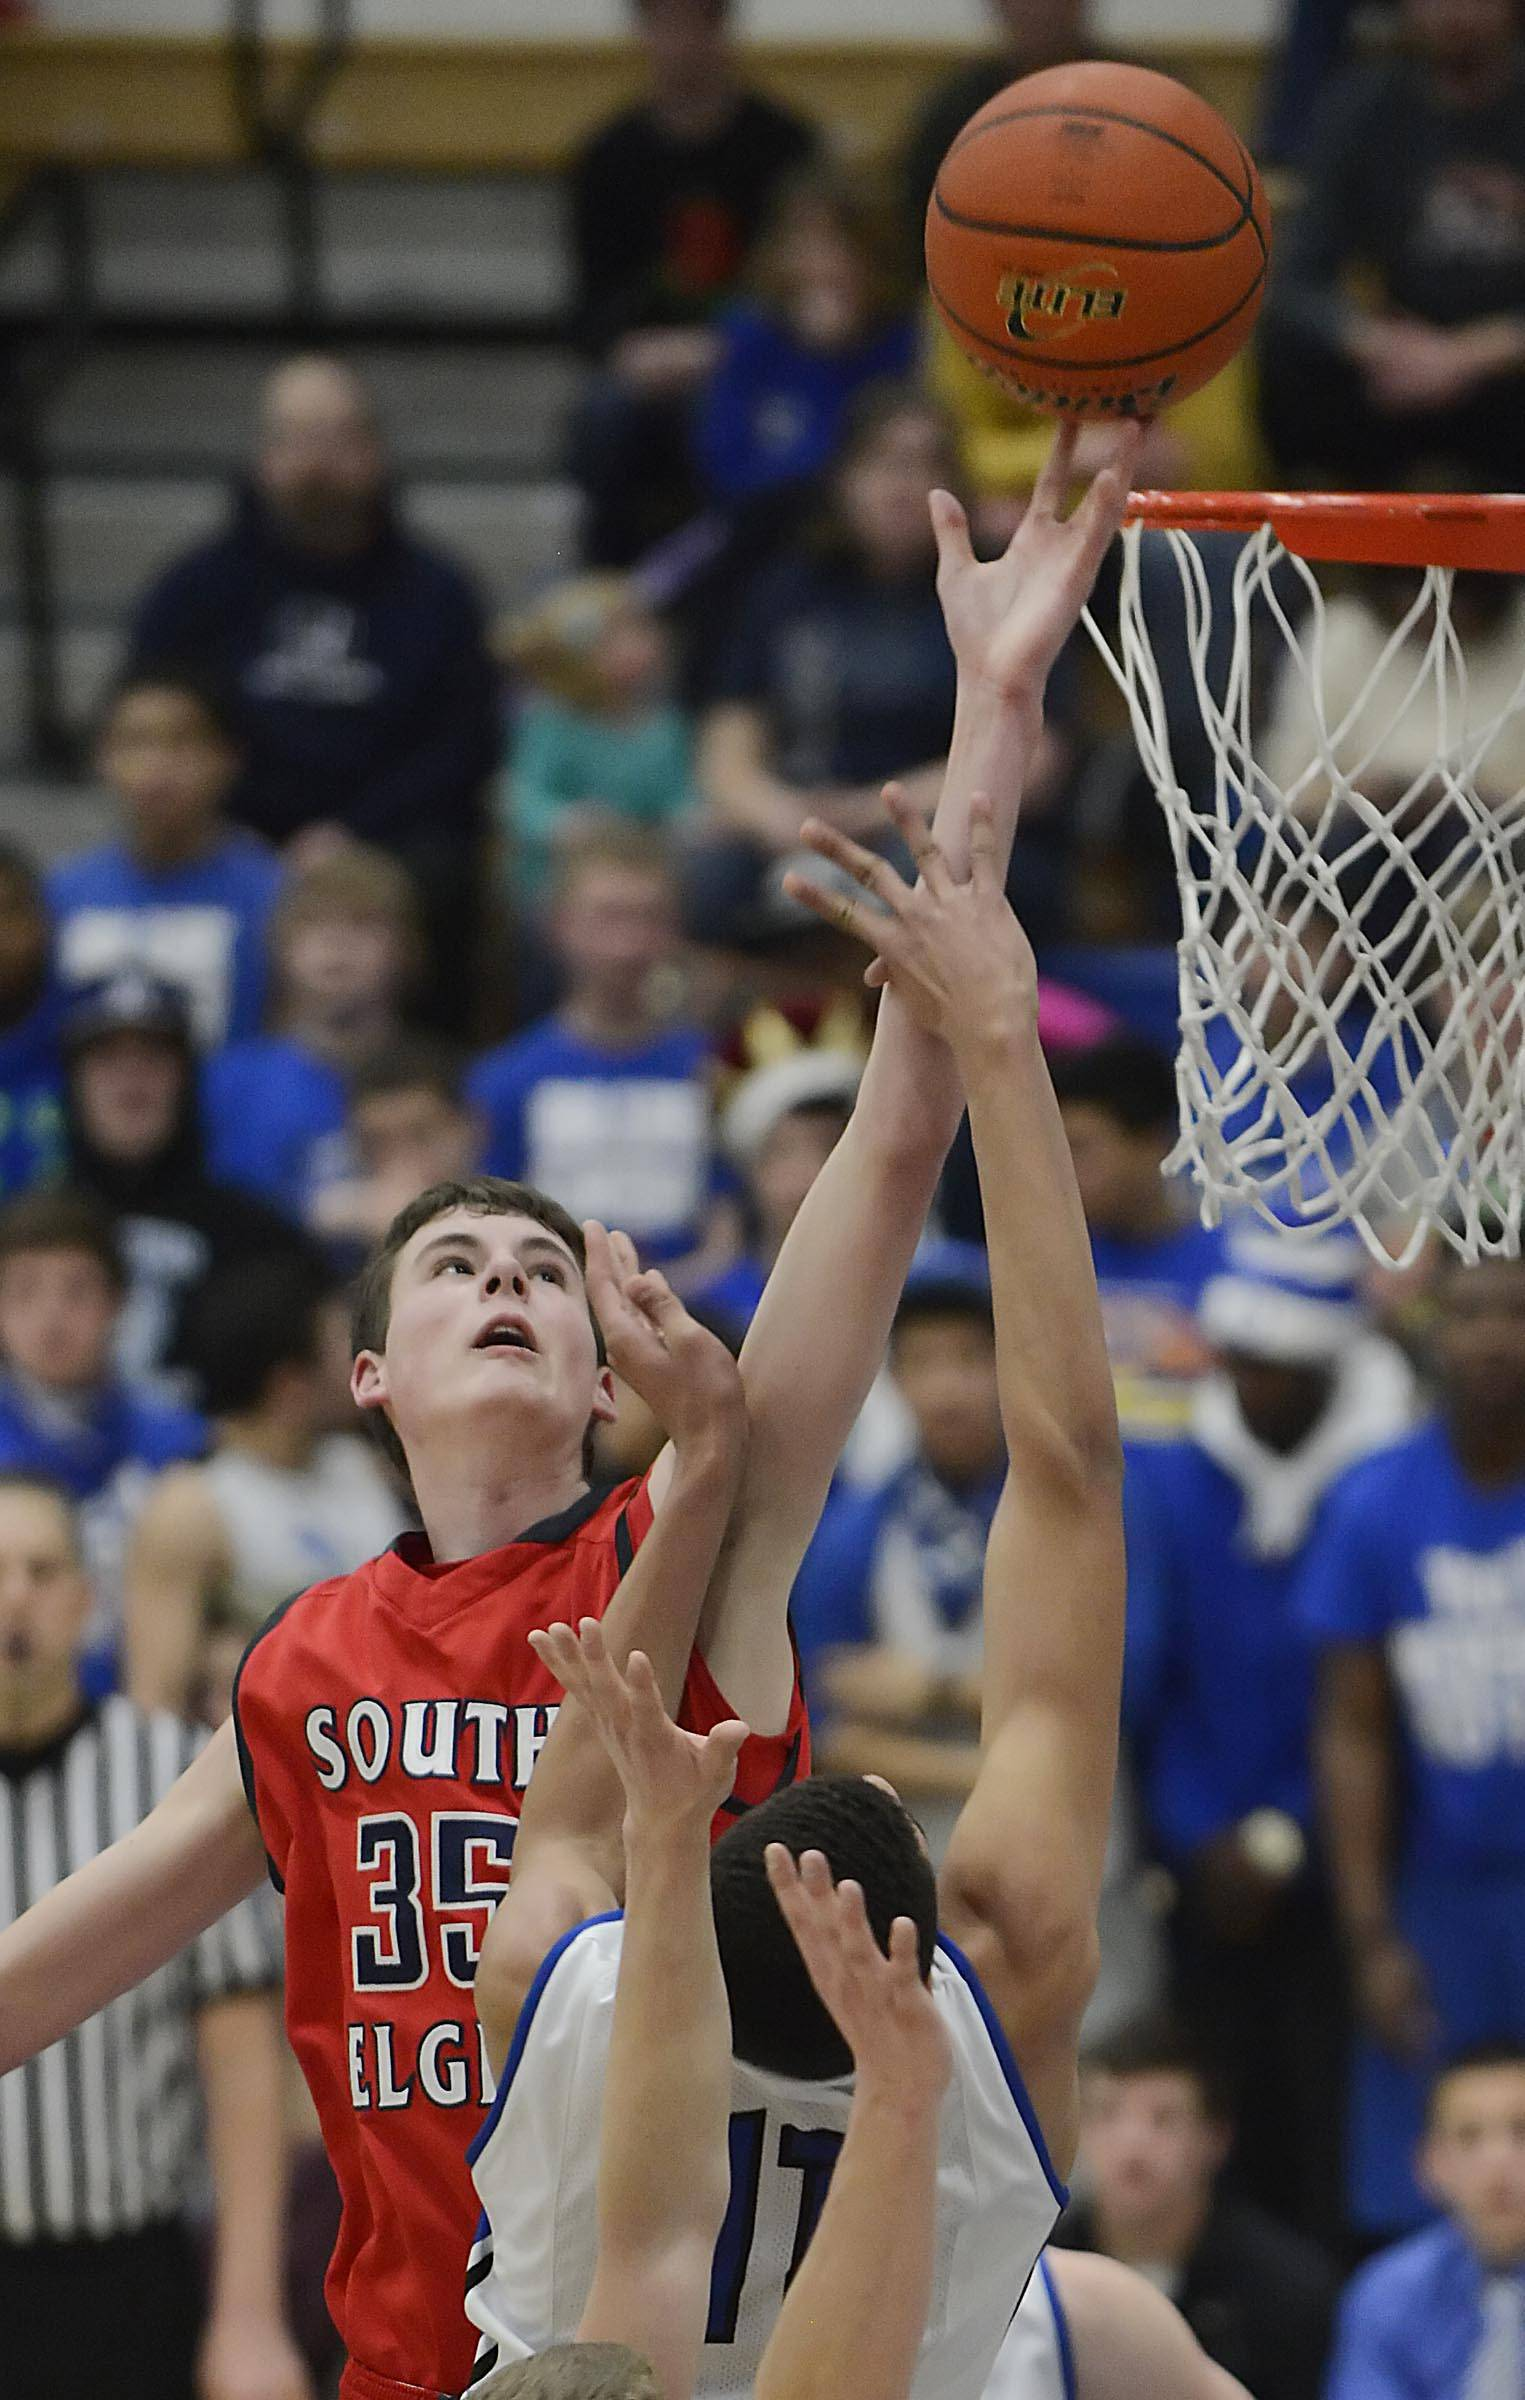 John Starks/jstarks@dailyherald.com  South Elgin's Tyler Hankins stretches for a rebound over Larkin's Christian Negron Tuesday in the St. Charles North regional game.